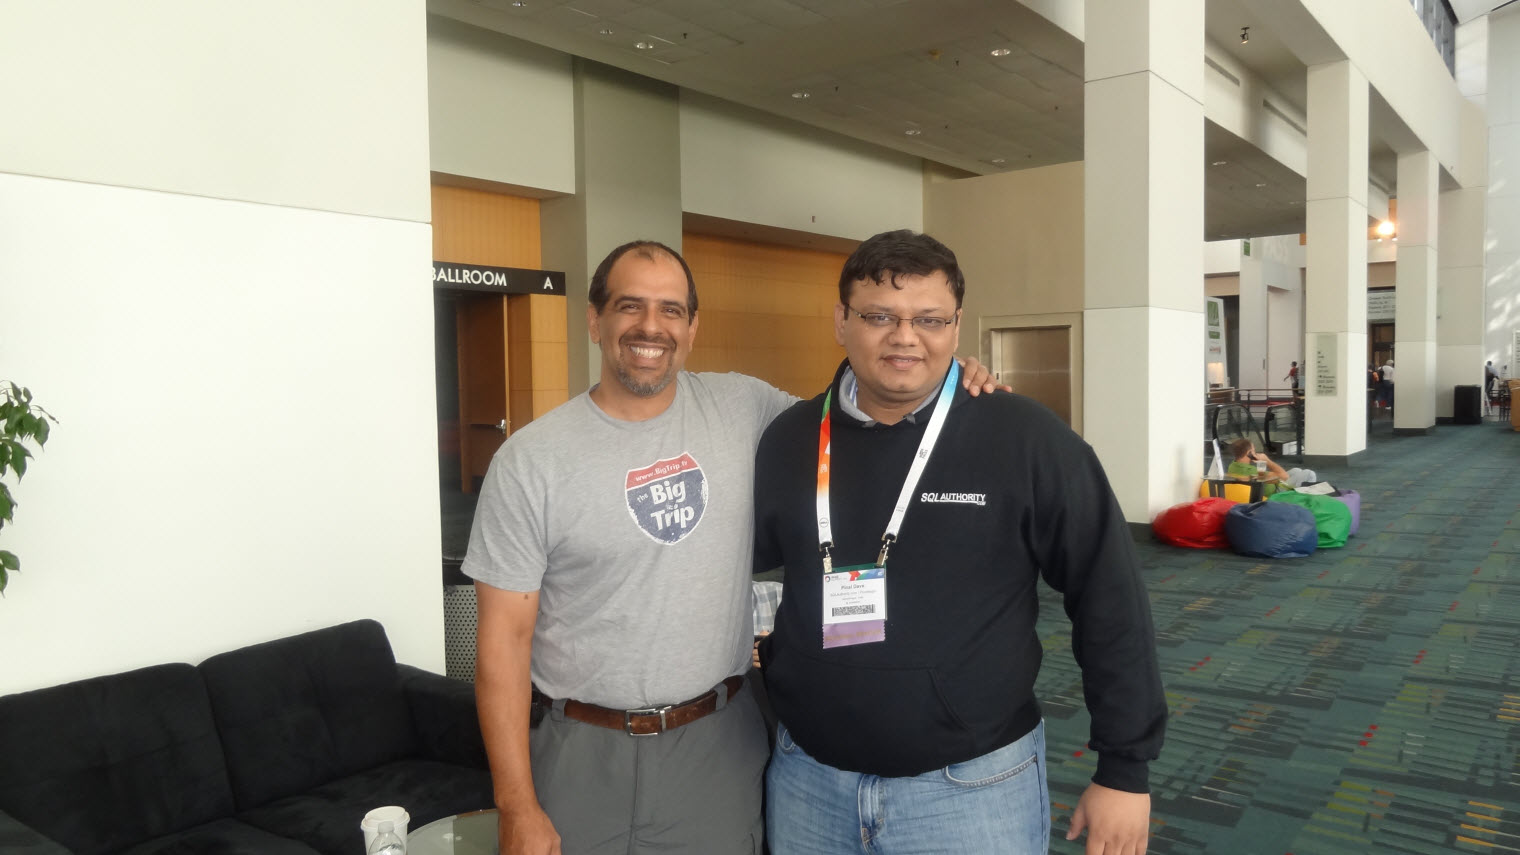 SQL SERVER - SQLPASS 2013, Charlotte Memories - Friends and Technology - Part 1  sqlpass2013-3